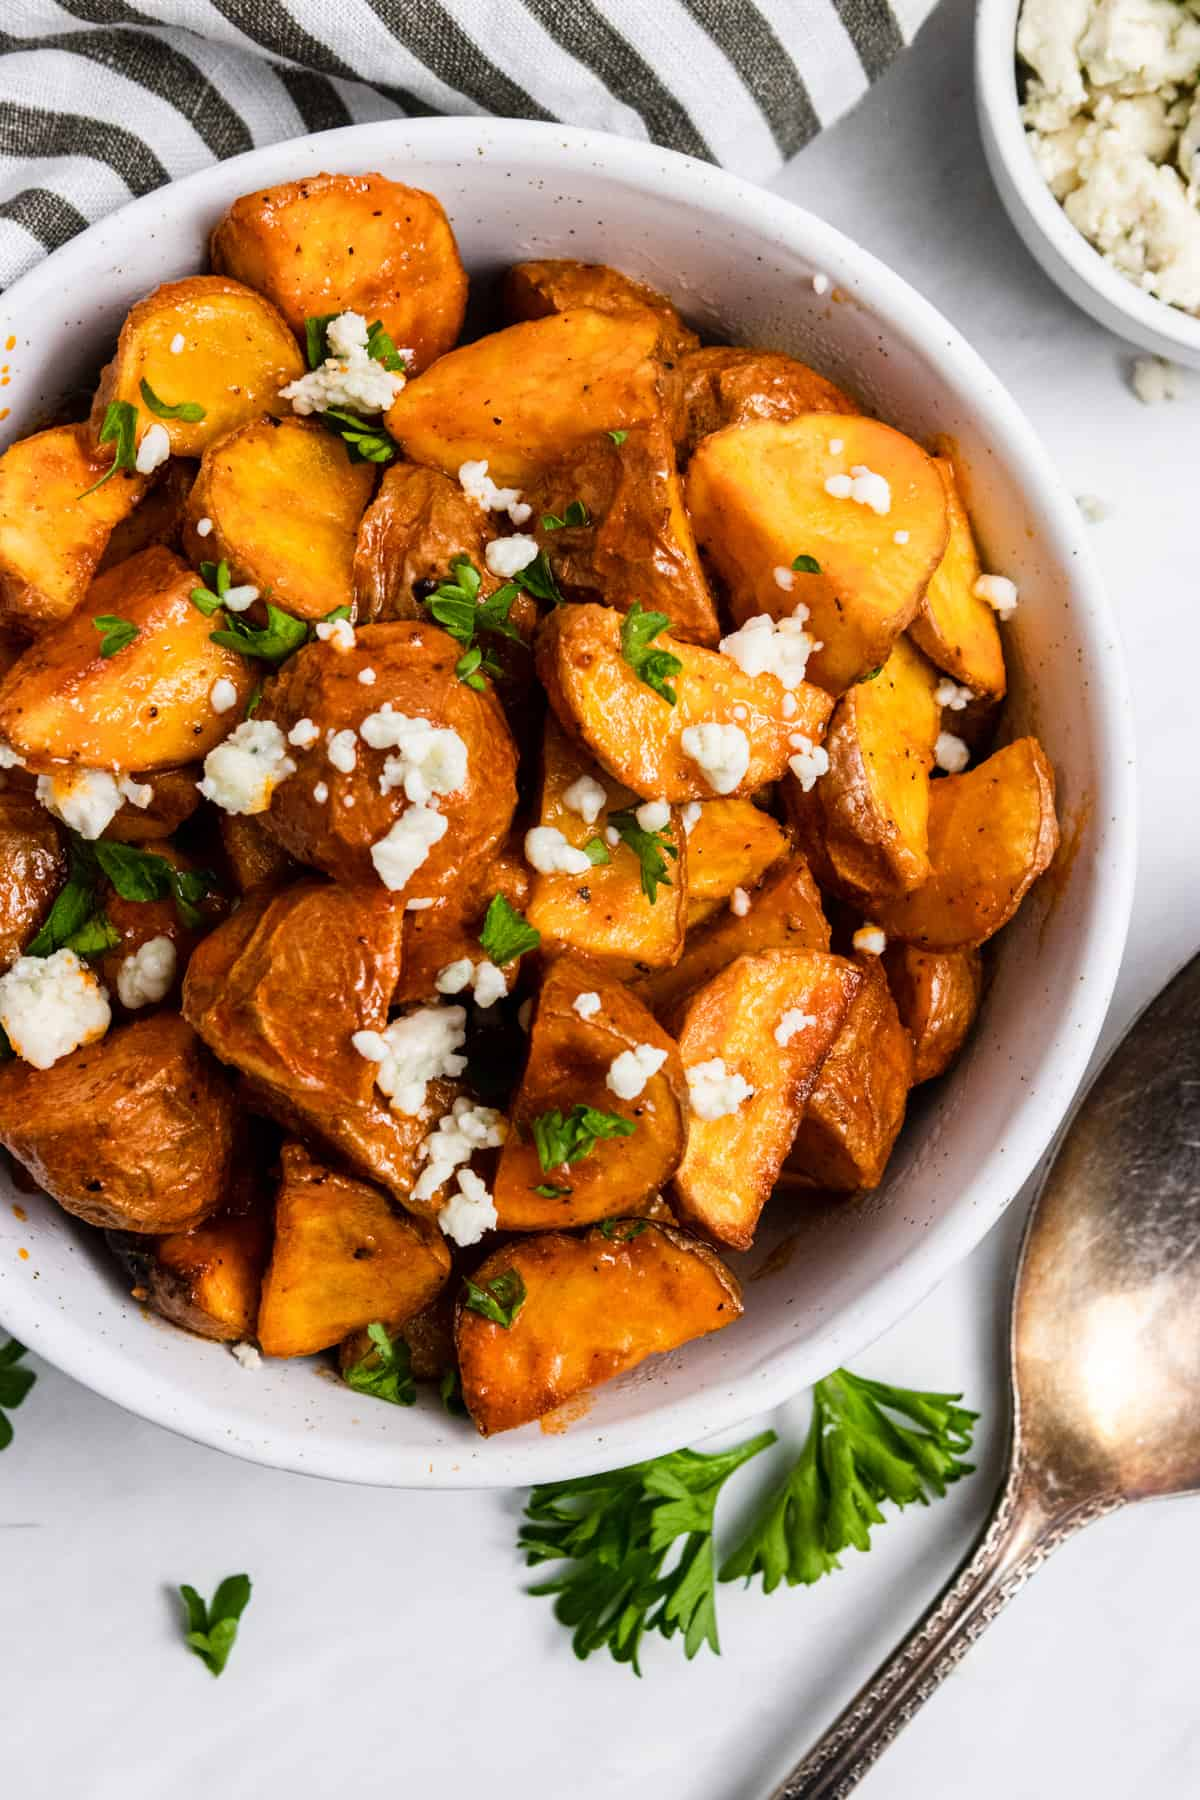 Diced potatoes in bowl with buffalo sauce.